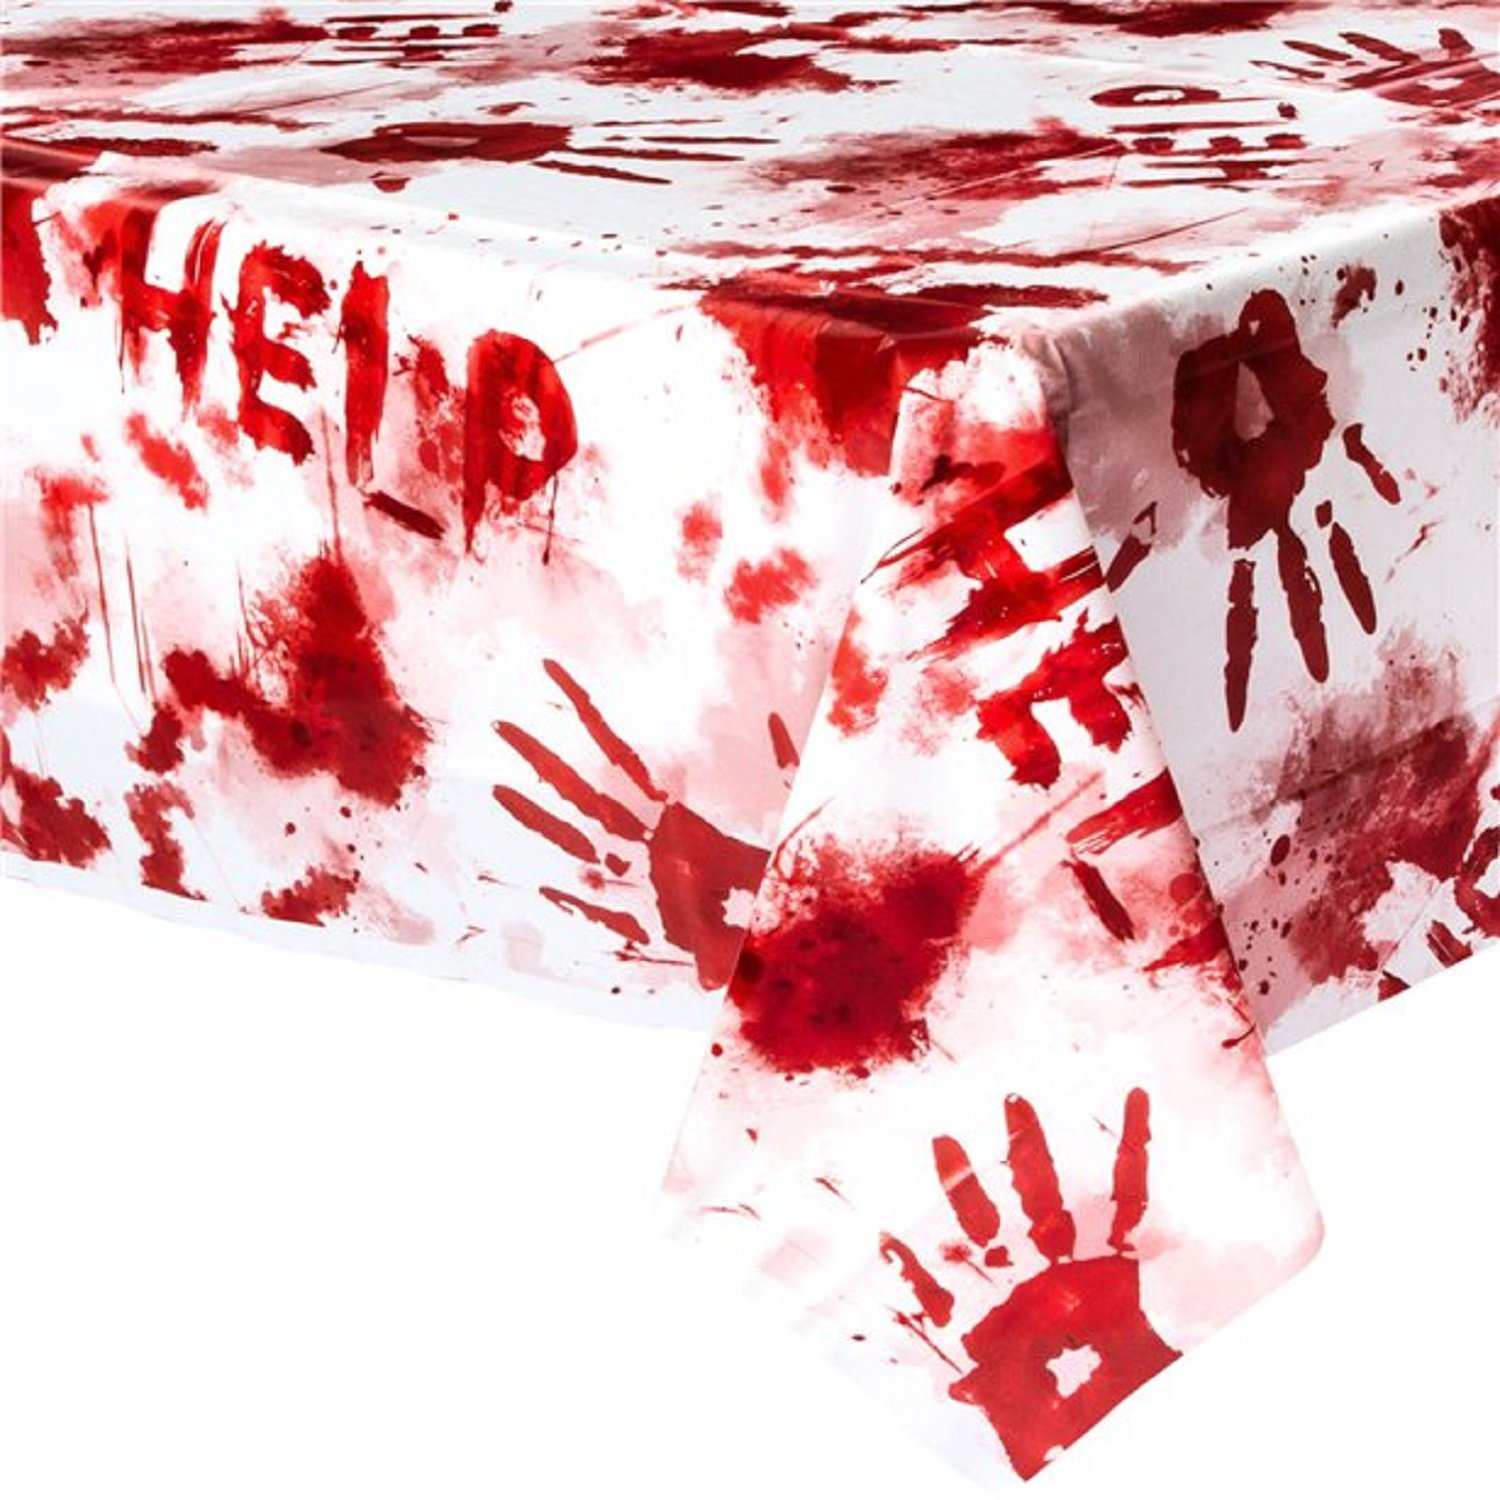 Fancy Me Halloween Party Celebration Decoration Bloody Blood Stained Handprint Help Scary Spooky Tablecover Tablecloth Tableware